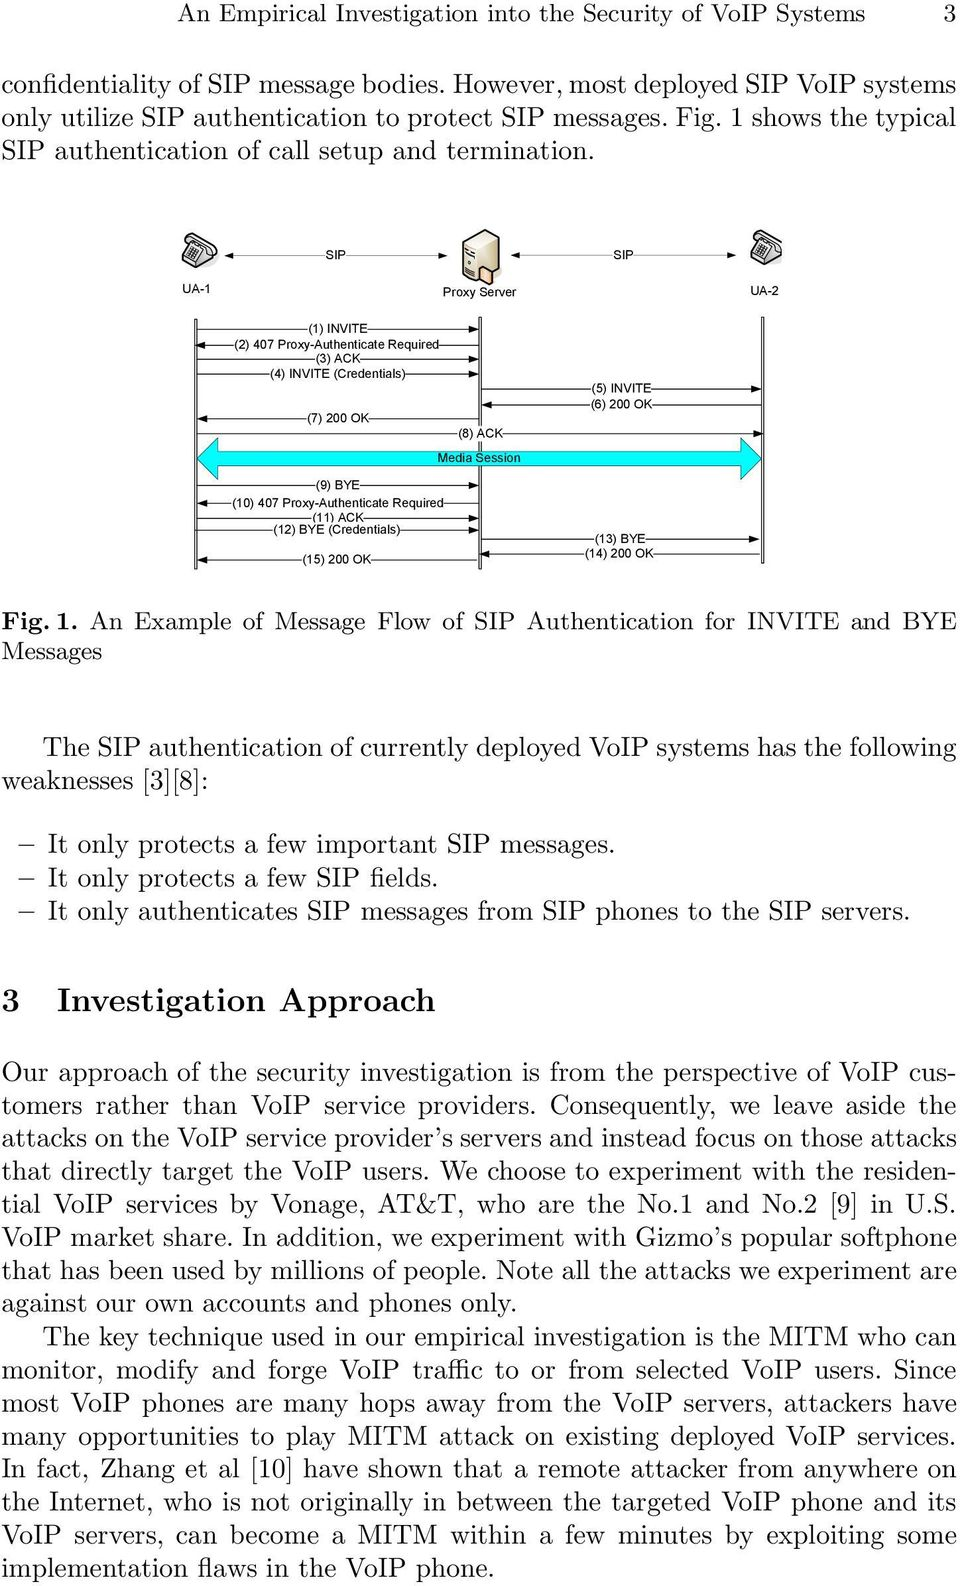 shows the typical SIP authentication of call setup and termination. Fig. 1.